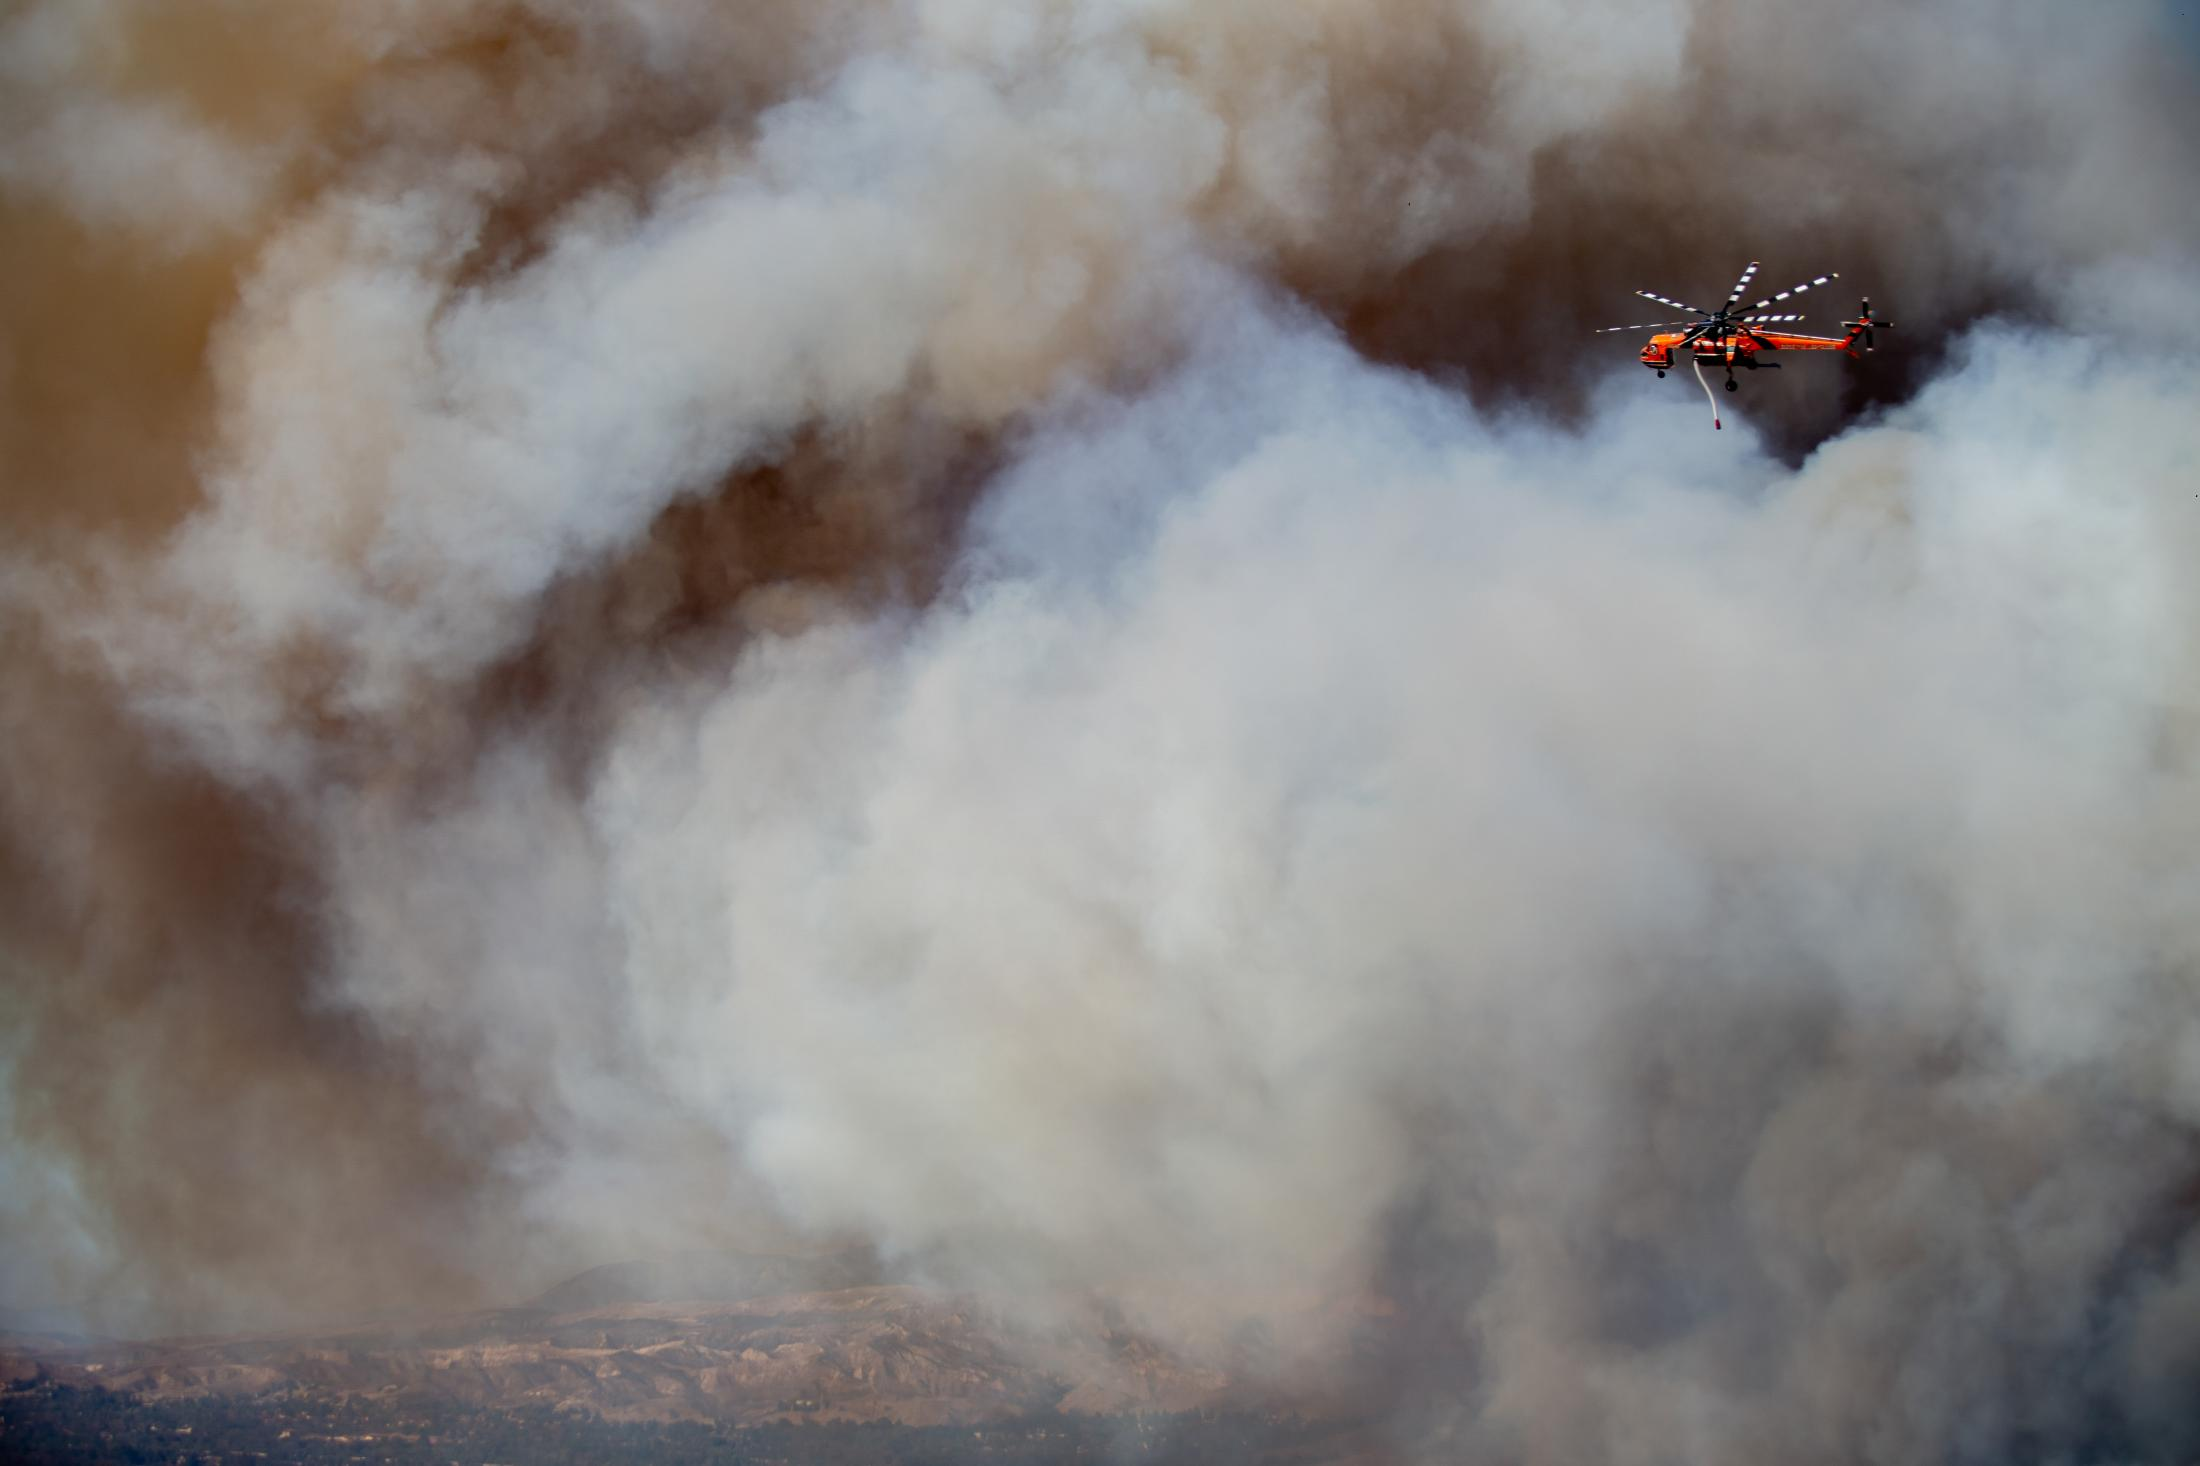 The state of California faced its worst fire season in history. One of the worst fires located in Los Angeles and Ventura County, named the Woolsey Fire. This wildfire burned; 96,949 acres and destroyed 1,643 structures. Three people reported to have died in the blaze, and over a quarter-million evacuated. A helicopter flys above as it make water drops on a new fire breakout.